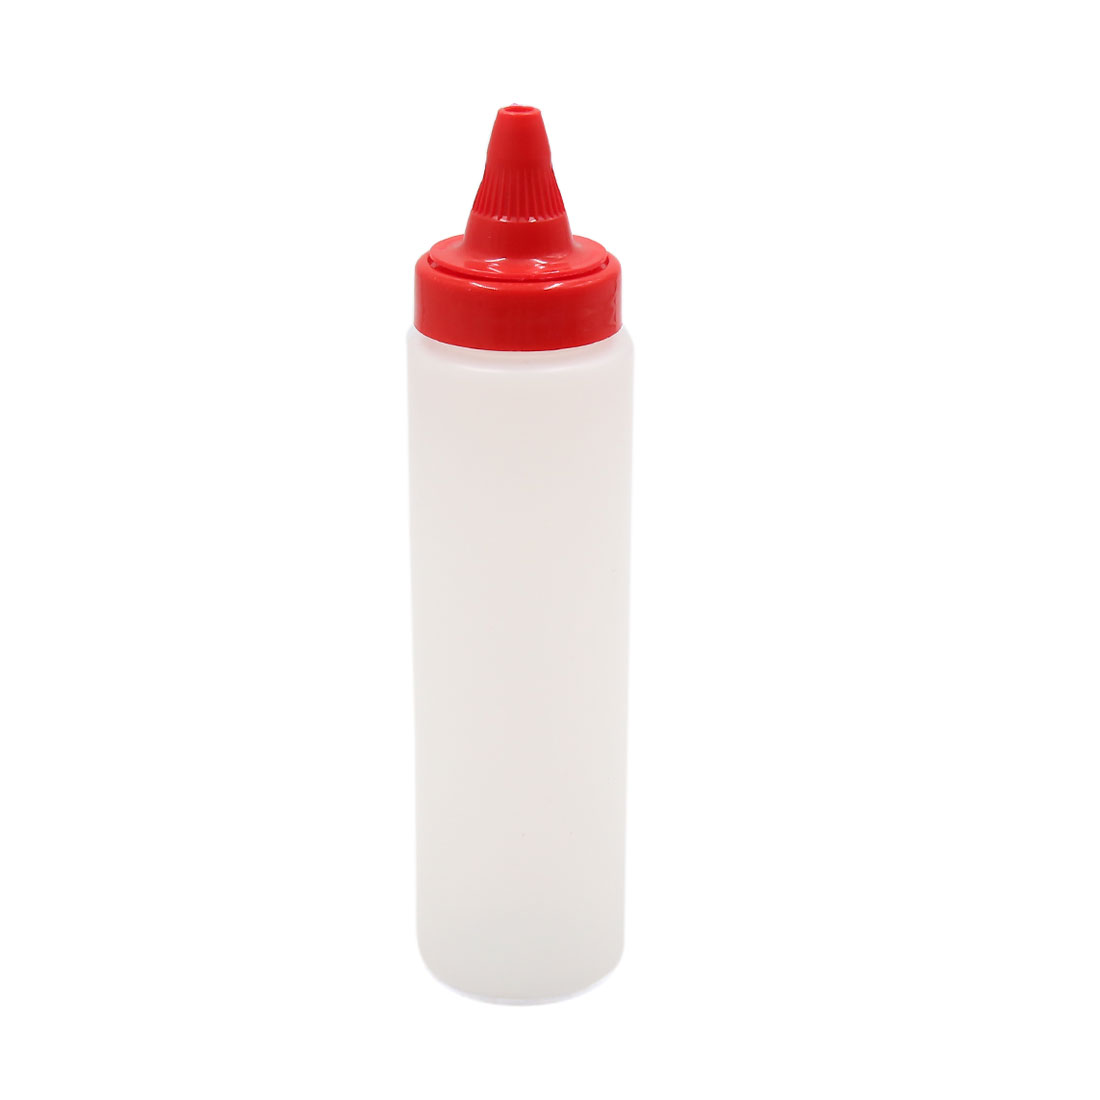 200ML Red Auto Car Vehicle Care Polish Wax Bottle Dispenser Can Pots